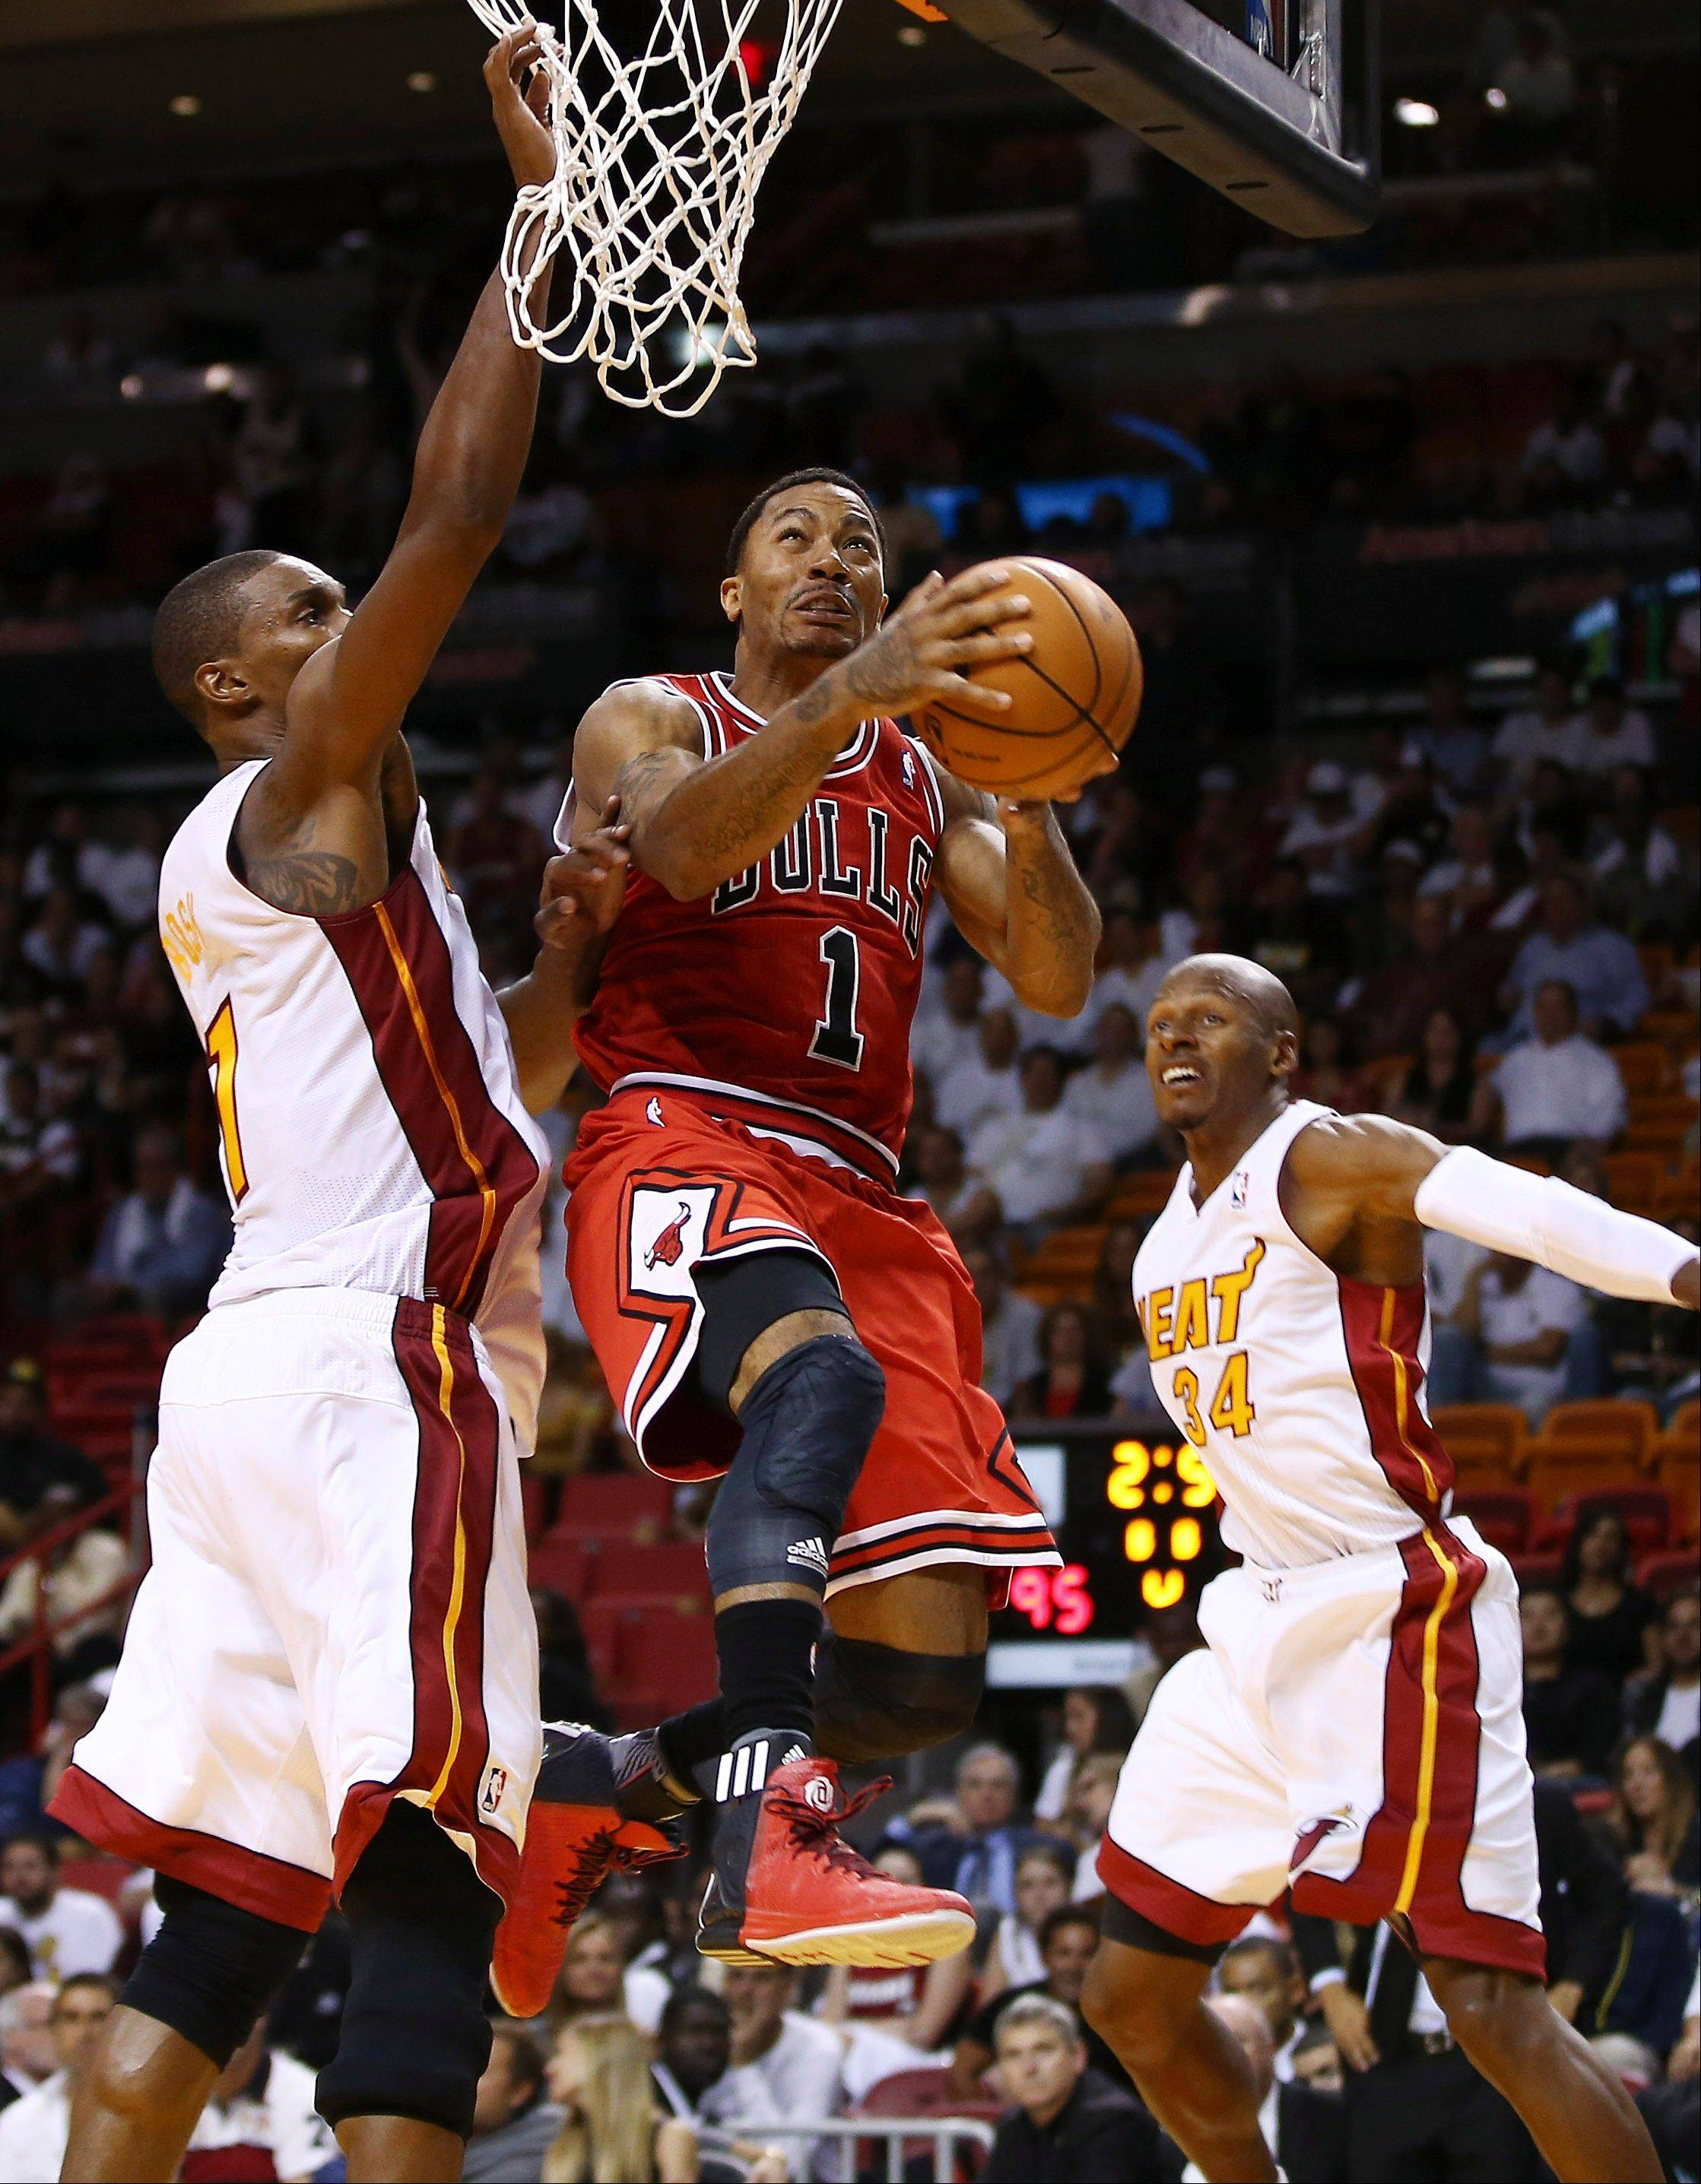 The Bulls� Derrick Rose goes to the basket between the Heat�s Chris Bosh (1) and Ray Allen (34) during the second half Tuesday night in Miami. The Heat won 107-95.